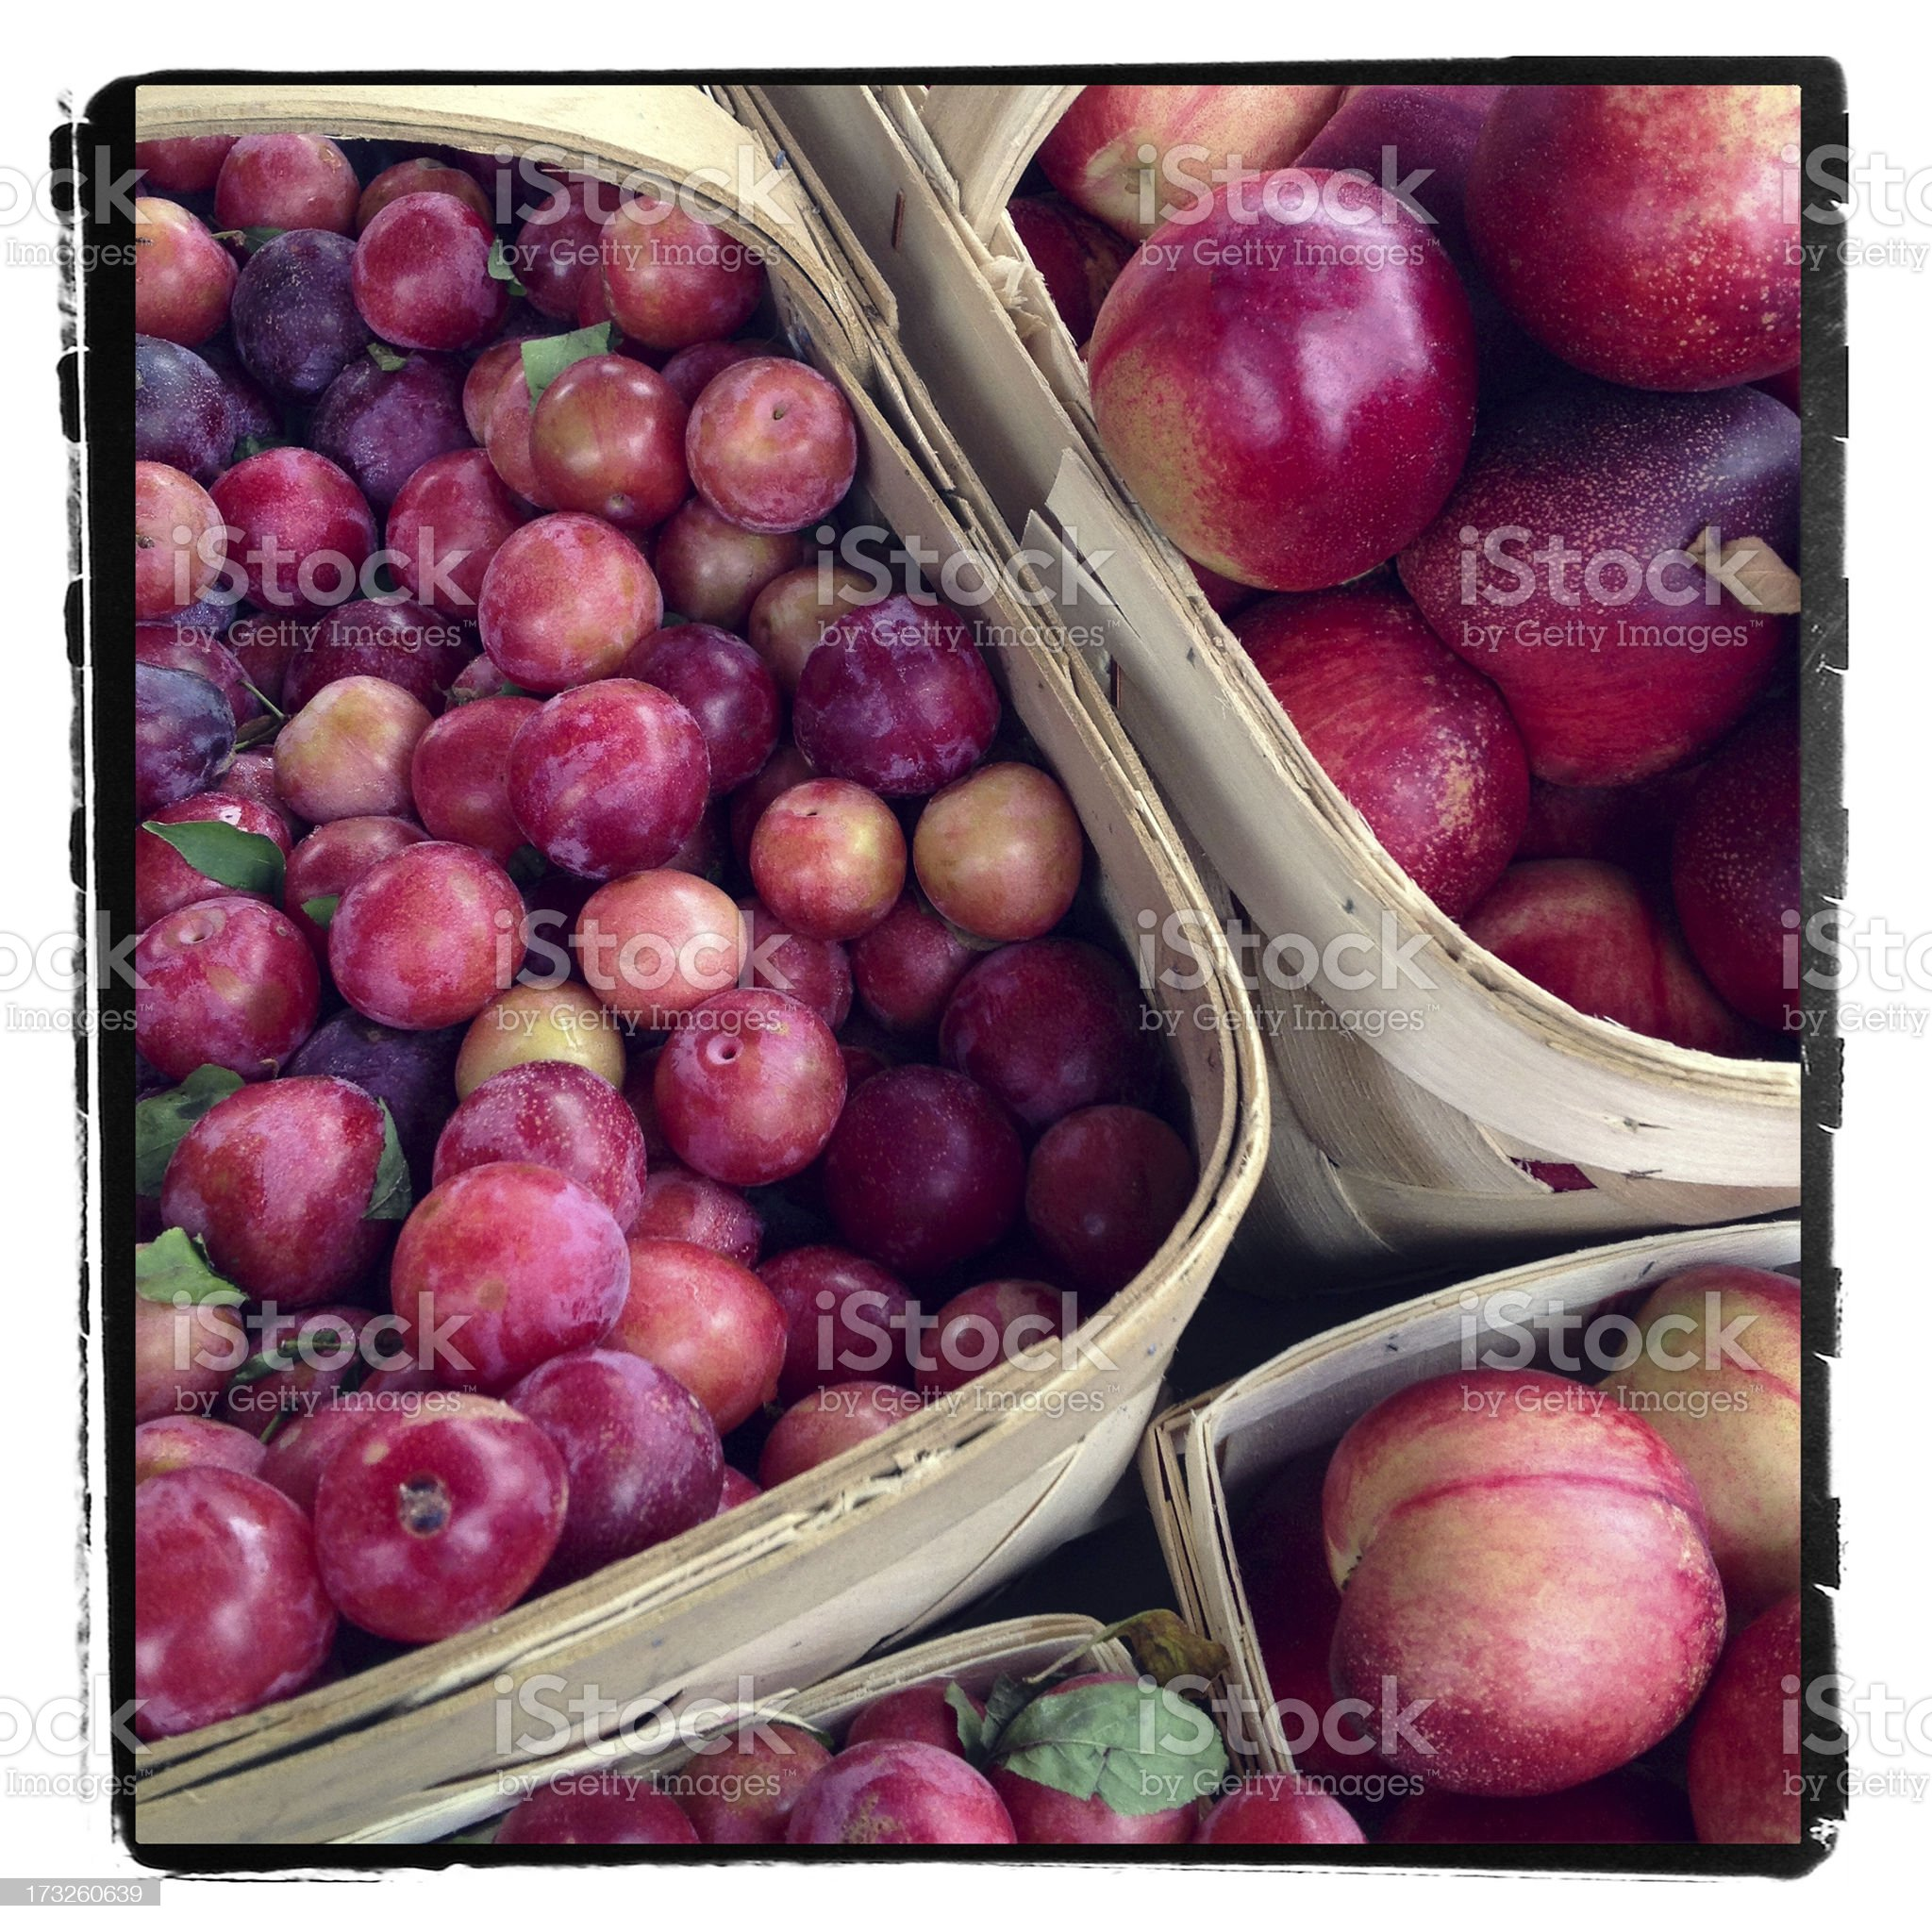 Plums and Nectarines royalty-free stock photo